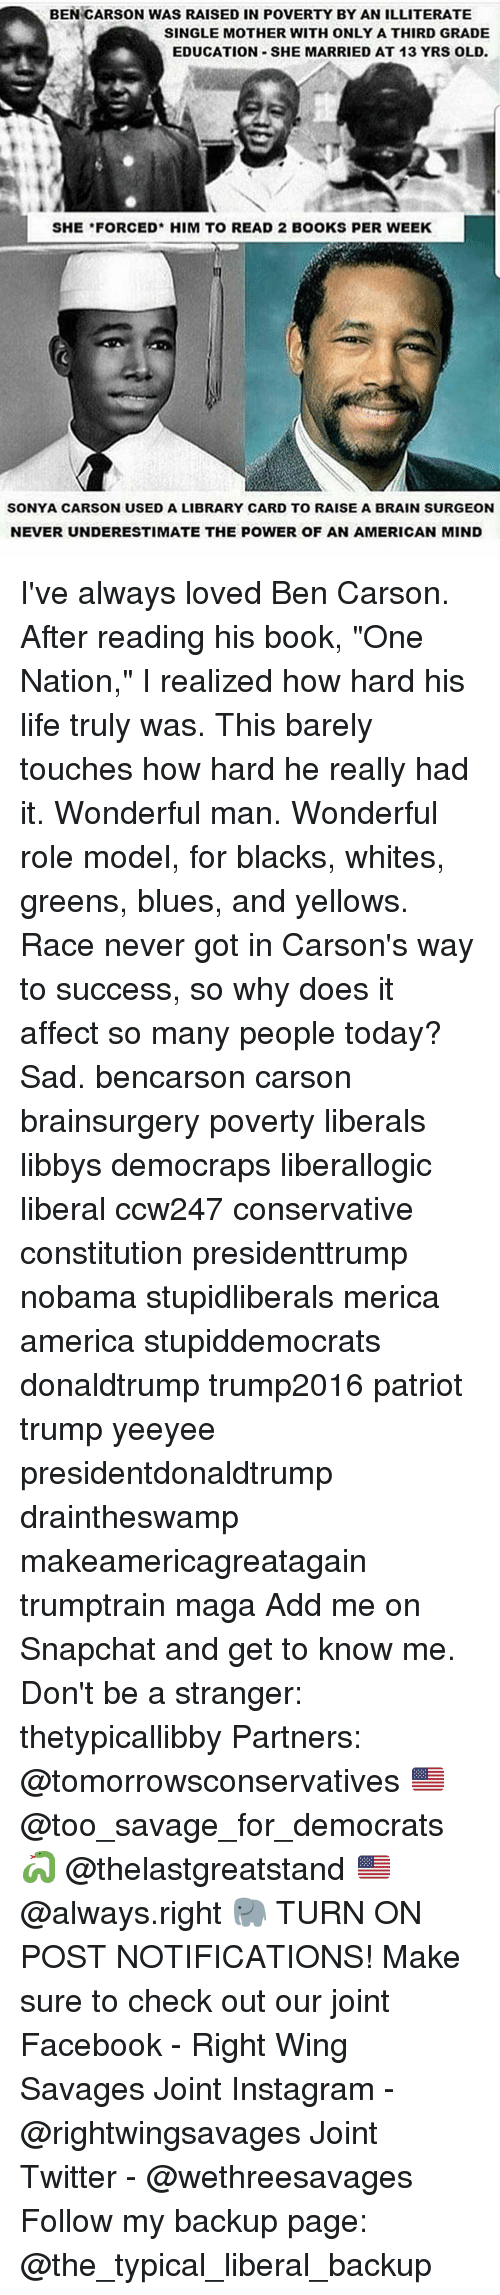 """Ben Carson, Affect, and Constitution: BEN CARSON WAS RAISED IN POVERTY BY AN ILLITERATE  SINGLE MOTHER WITH ONLY A THIRD GRADE  EDUCATION SHE MARRIED AT 13 YRS OLD.  SHE FORCED HIM TO READ 2 BOOKS PER WEEK  SONYA CARSON USED A LIBRARY CARD TO RAISE A BRAIN SURGEON  NEVER UNDERESTIMATE THE POWER OF AN AMERICAN MIND I've always loved Ben Carson. After reading his book, """"One Nation,"""" I realized how hard his life truly was. This barely touches how hard he really had it. Wonderful man. Wonderful role model, for blacks, whites, greens, blues, and yellows. Race never got in Carson's way to success, so why does it affect so many people today? Sad. bencarson carson brainsurgery poverty liberals libbys democraps liberallogic liberal ccw247 conservative constitution presidenttrump nobama stupidliberals merica america stupiddemocrats donaldtrump trump2016 patriot trump yeeyee presidentdonaldtrump draintheswamp makeamericagreatagain trumptrain maga Add me on Snapchat and get to know me. Don't be a stranger: thetypicallibby Partners: @tomorrowsconservatives 🇺🇸 @too_savage_for_democrats 🐍 @thelastgreatstand 🇺🇸 @always.right 🐘 TURN ON POST NOTIFICATIONS! Make sure to check out our joint Facebook - Right Wing Savages Joint Instagram - @rightwingsavages Joint Twitter - @wethreesavages Follow my backup page: @the_typical_liberal_backup"""